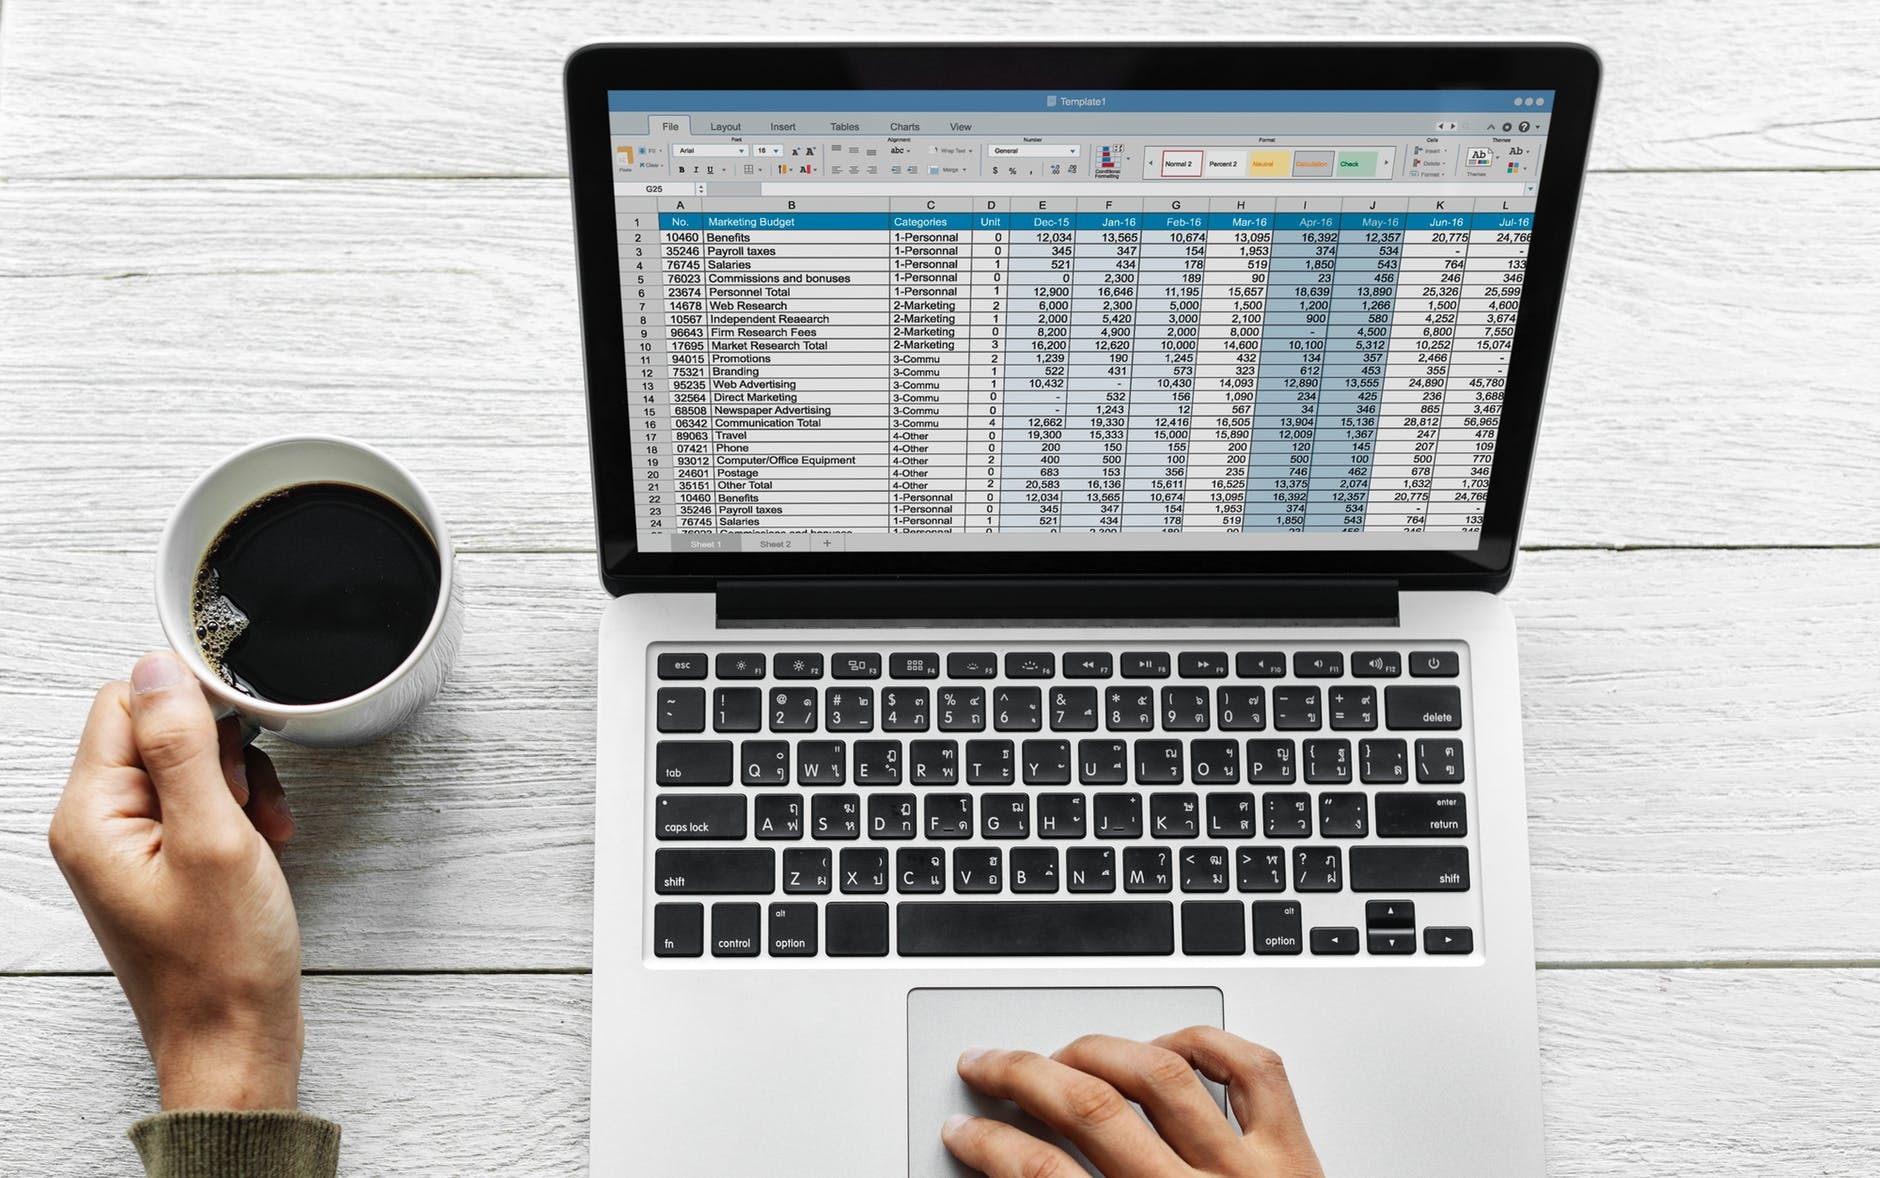 This online training makes spreadsheets a breeze